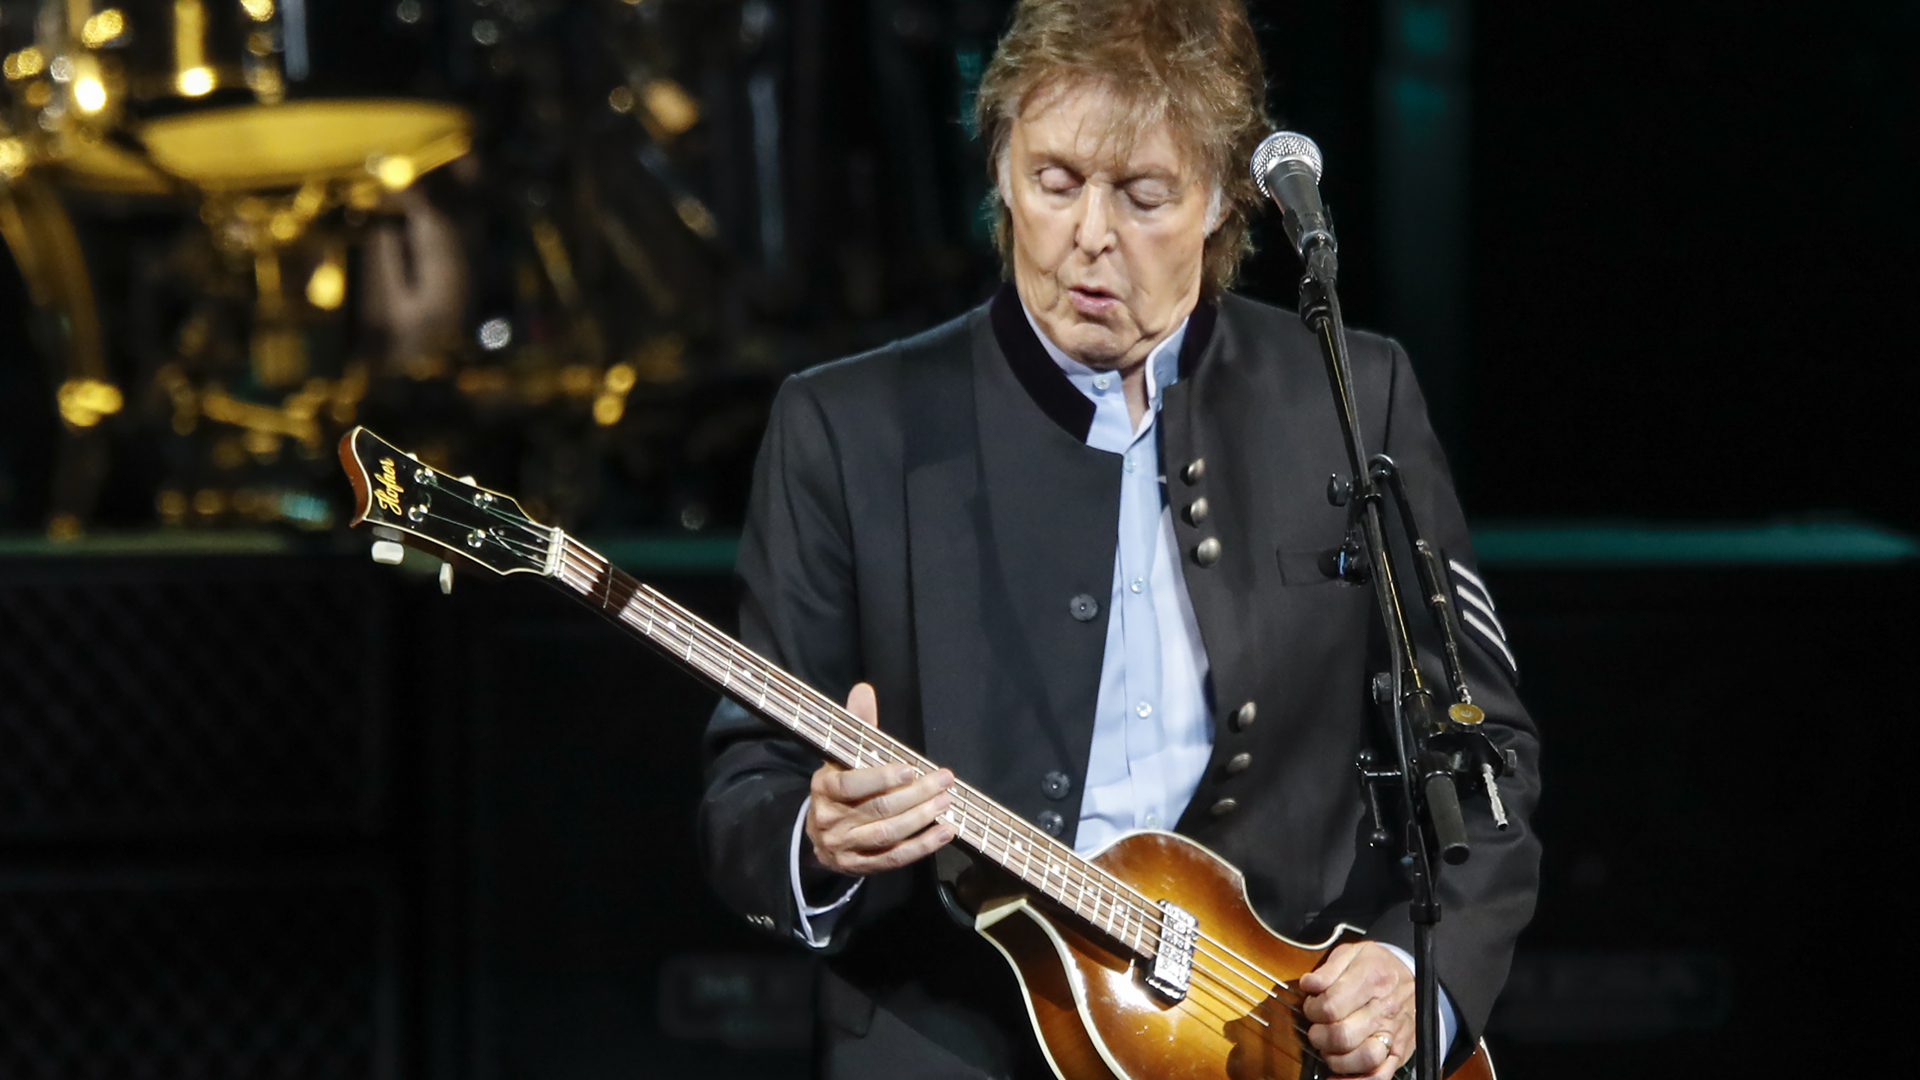 Sir Paul McCartney performs in concert during his One on One tour at Hollywood Casino Amphitheatre on July 26, 2017 in Tinley Park, Illinois. (Credit: KAMIL KRZACZYNSKI/AFP/Getty Images)